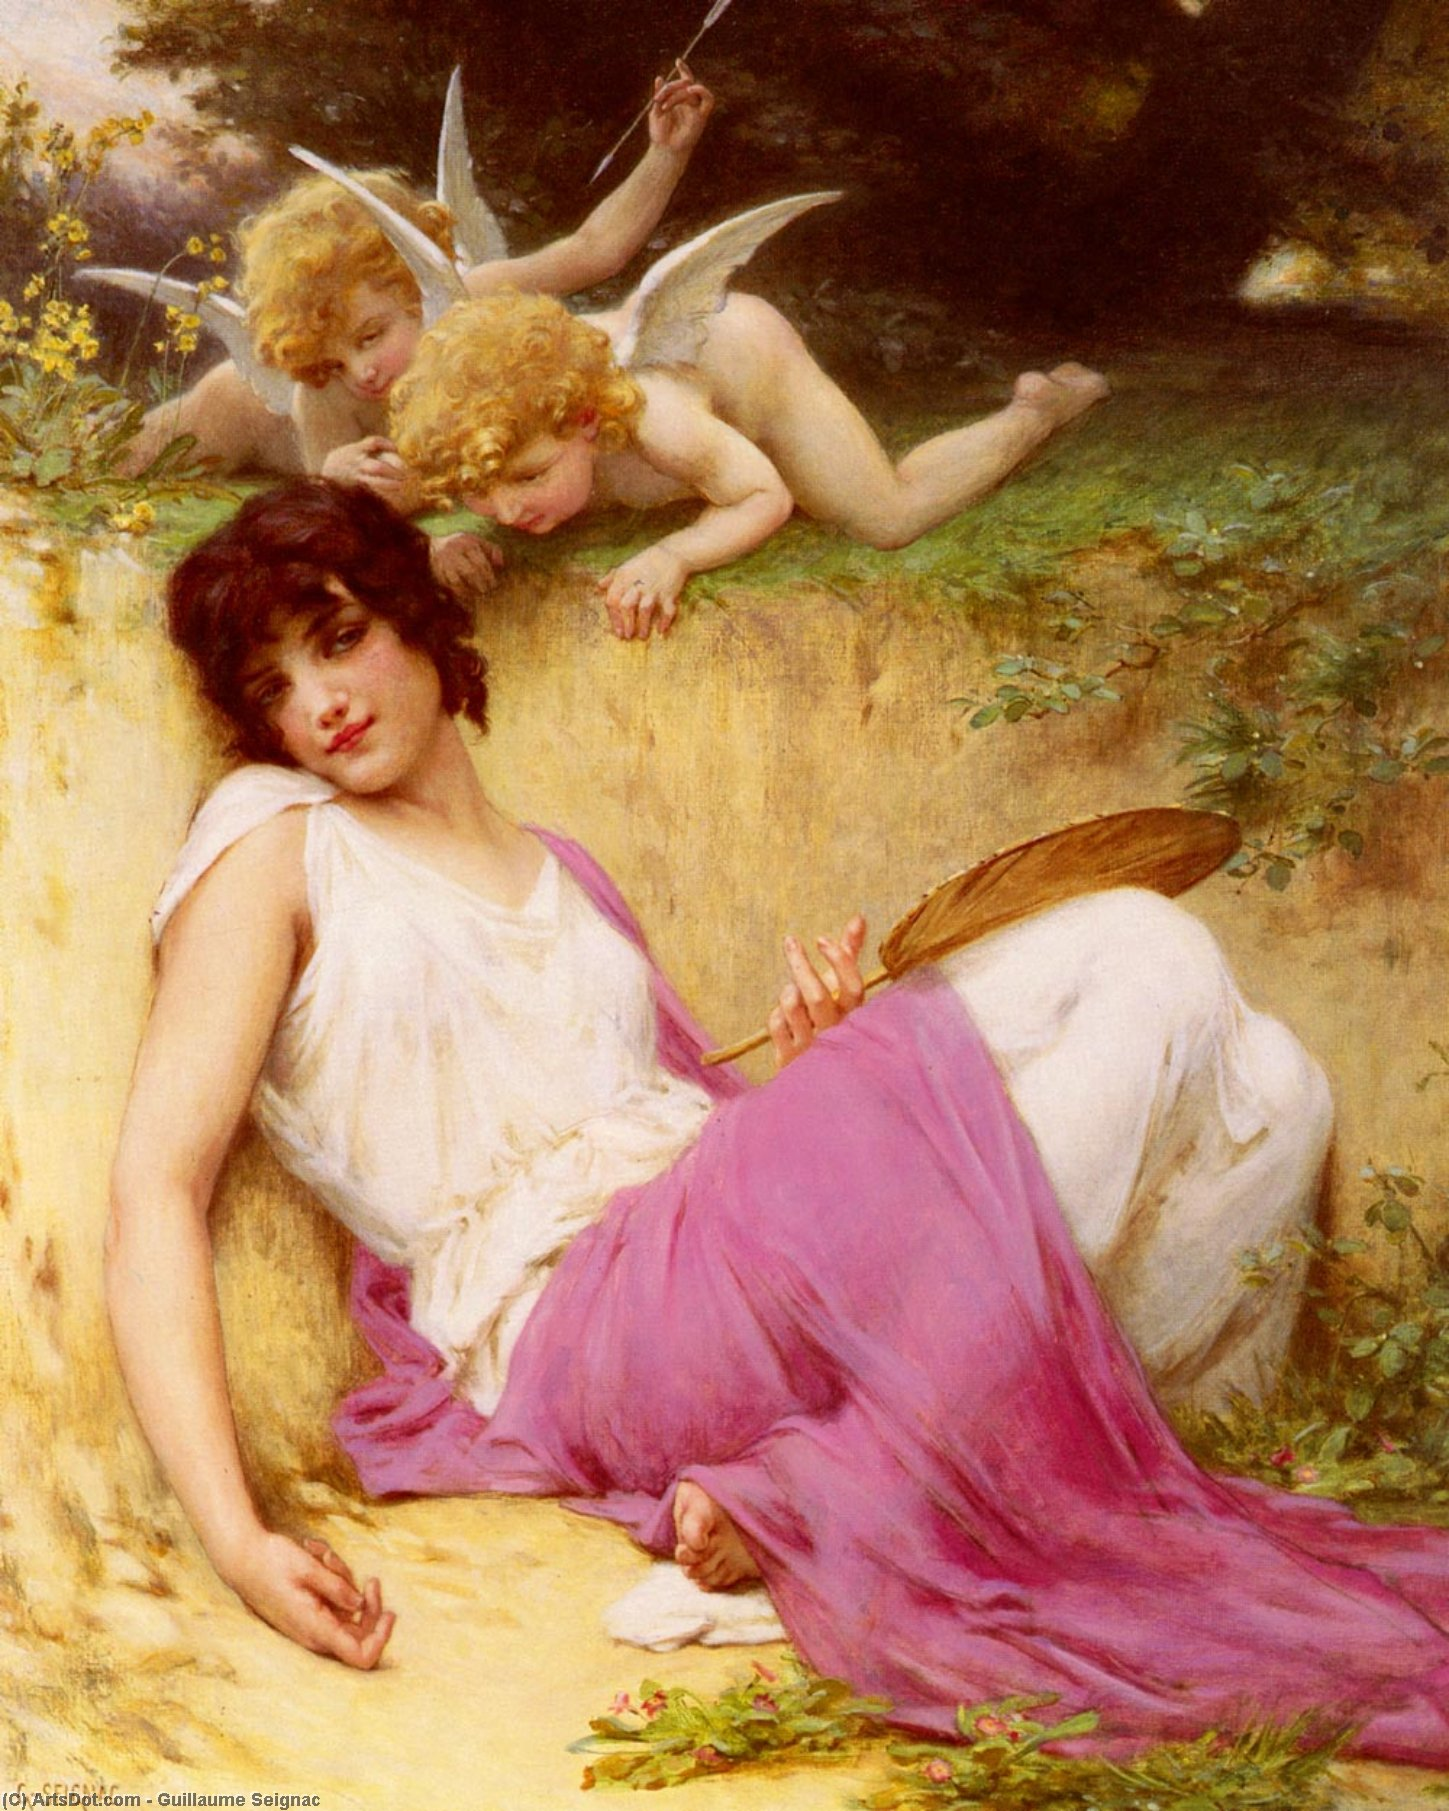 L innocence by Guillaume Seignac (1870-1924, France)